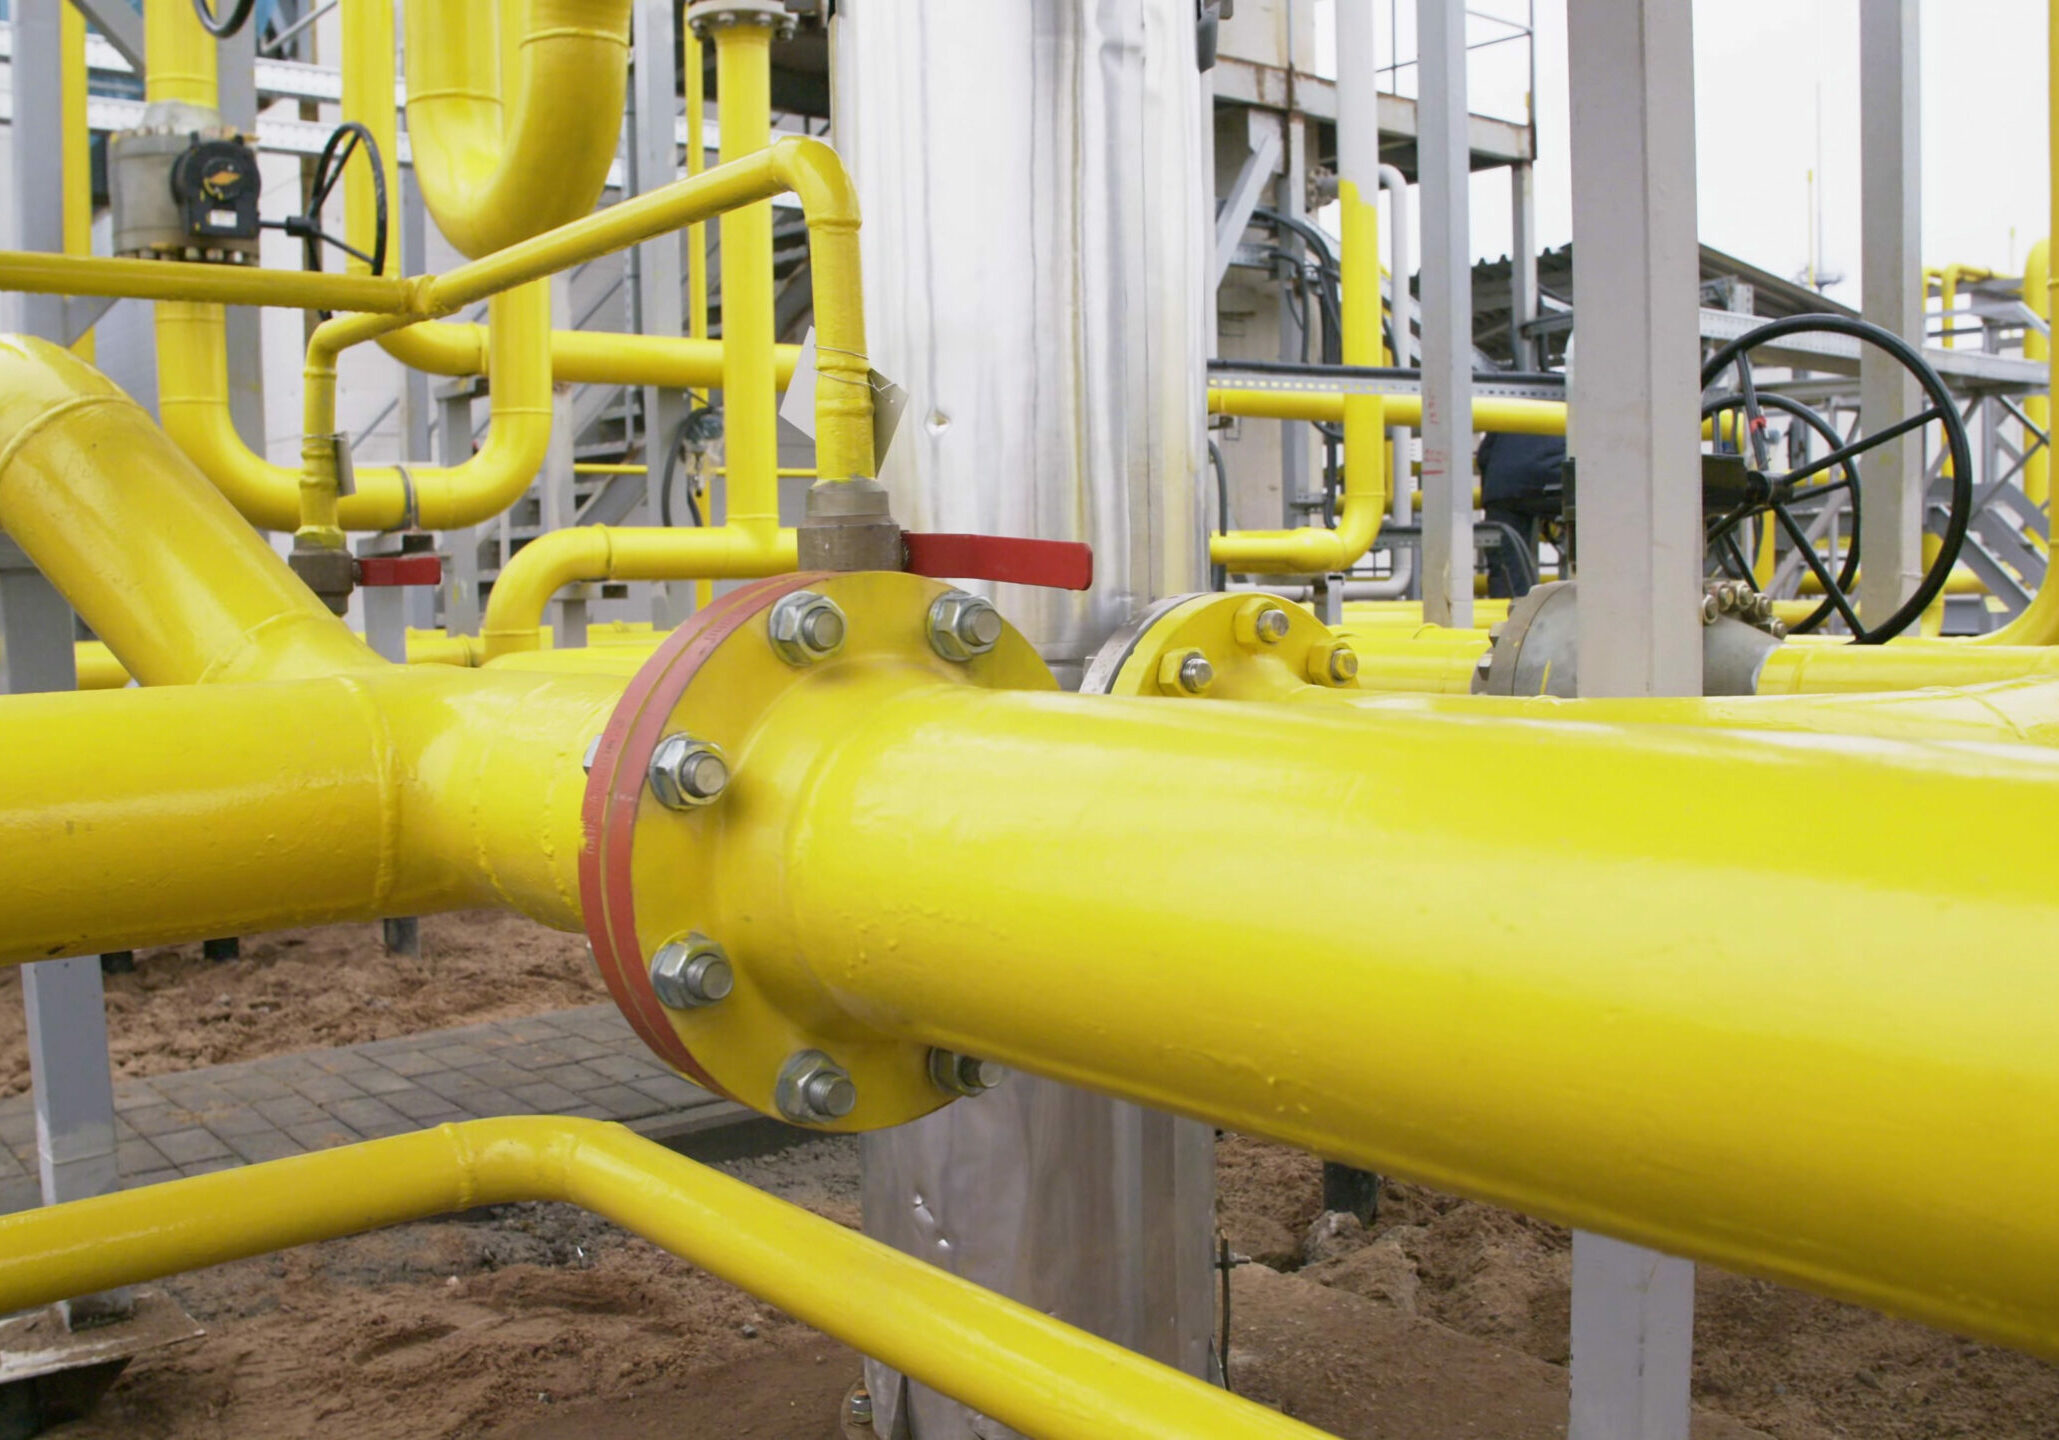 Close up of refinery plant equipment of yellow pipe line for oil and gas valves at gas plant. Heavy industry and manufacturing concept